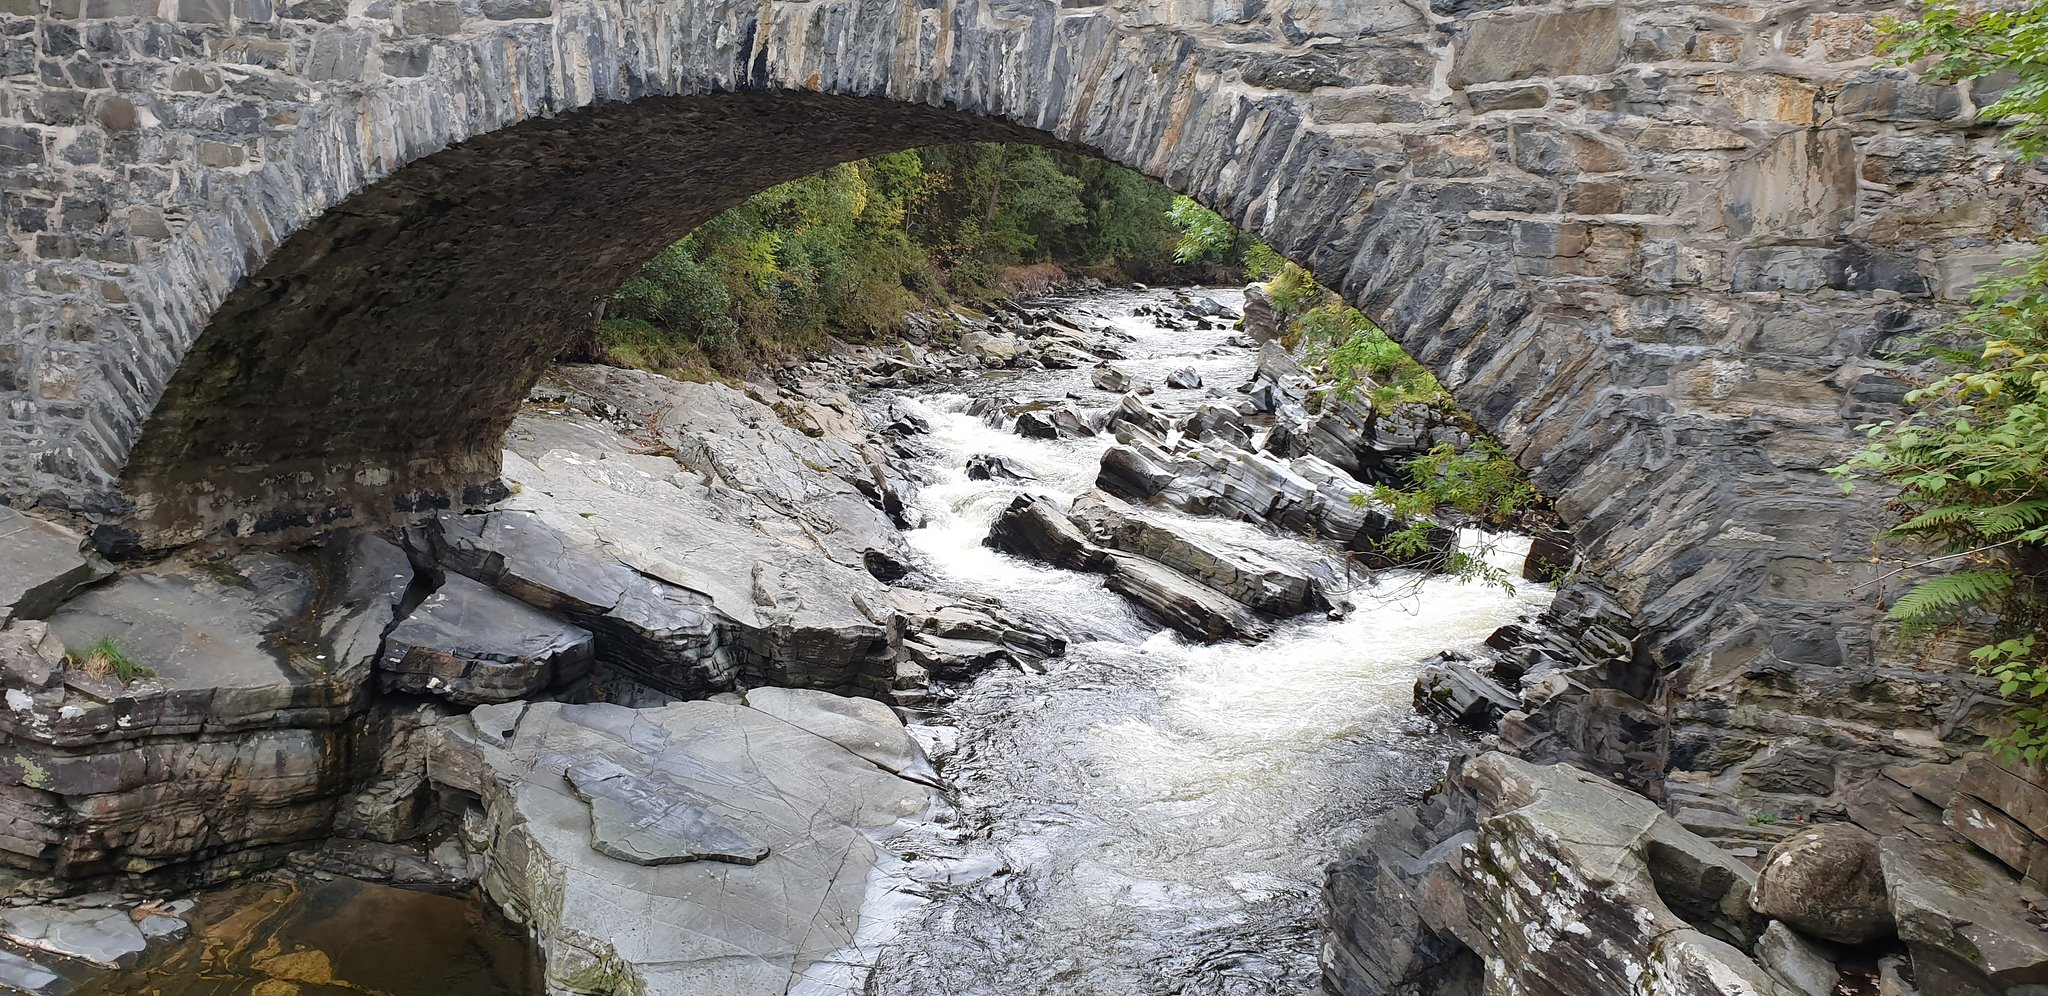 A stone, arched bridge over a narrow river